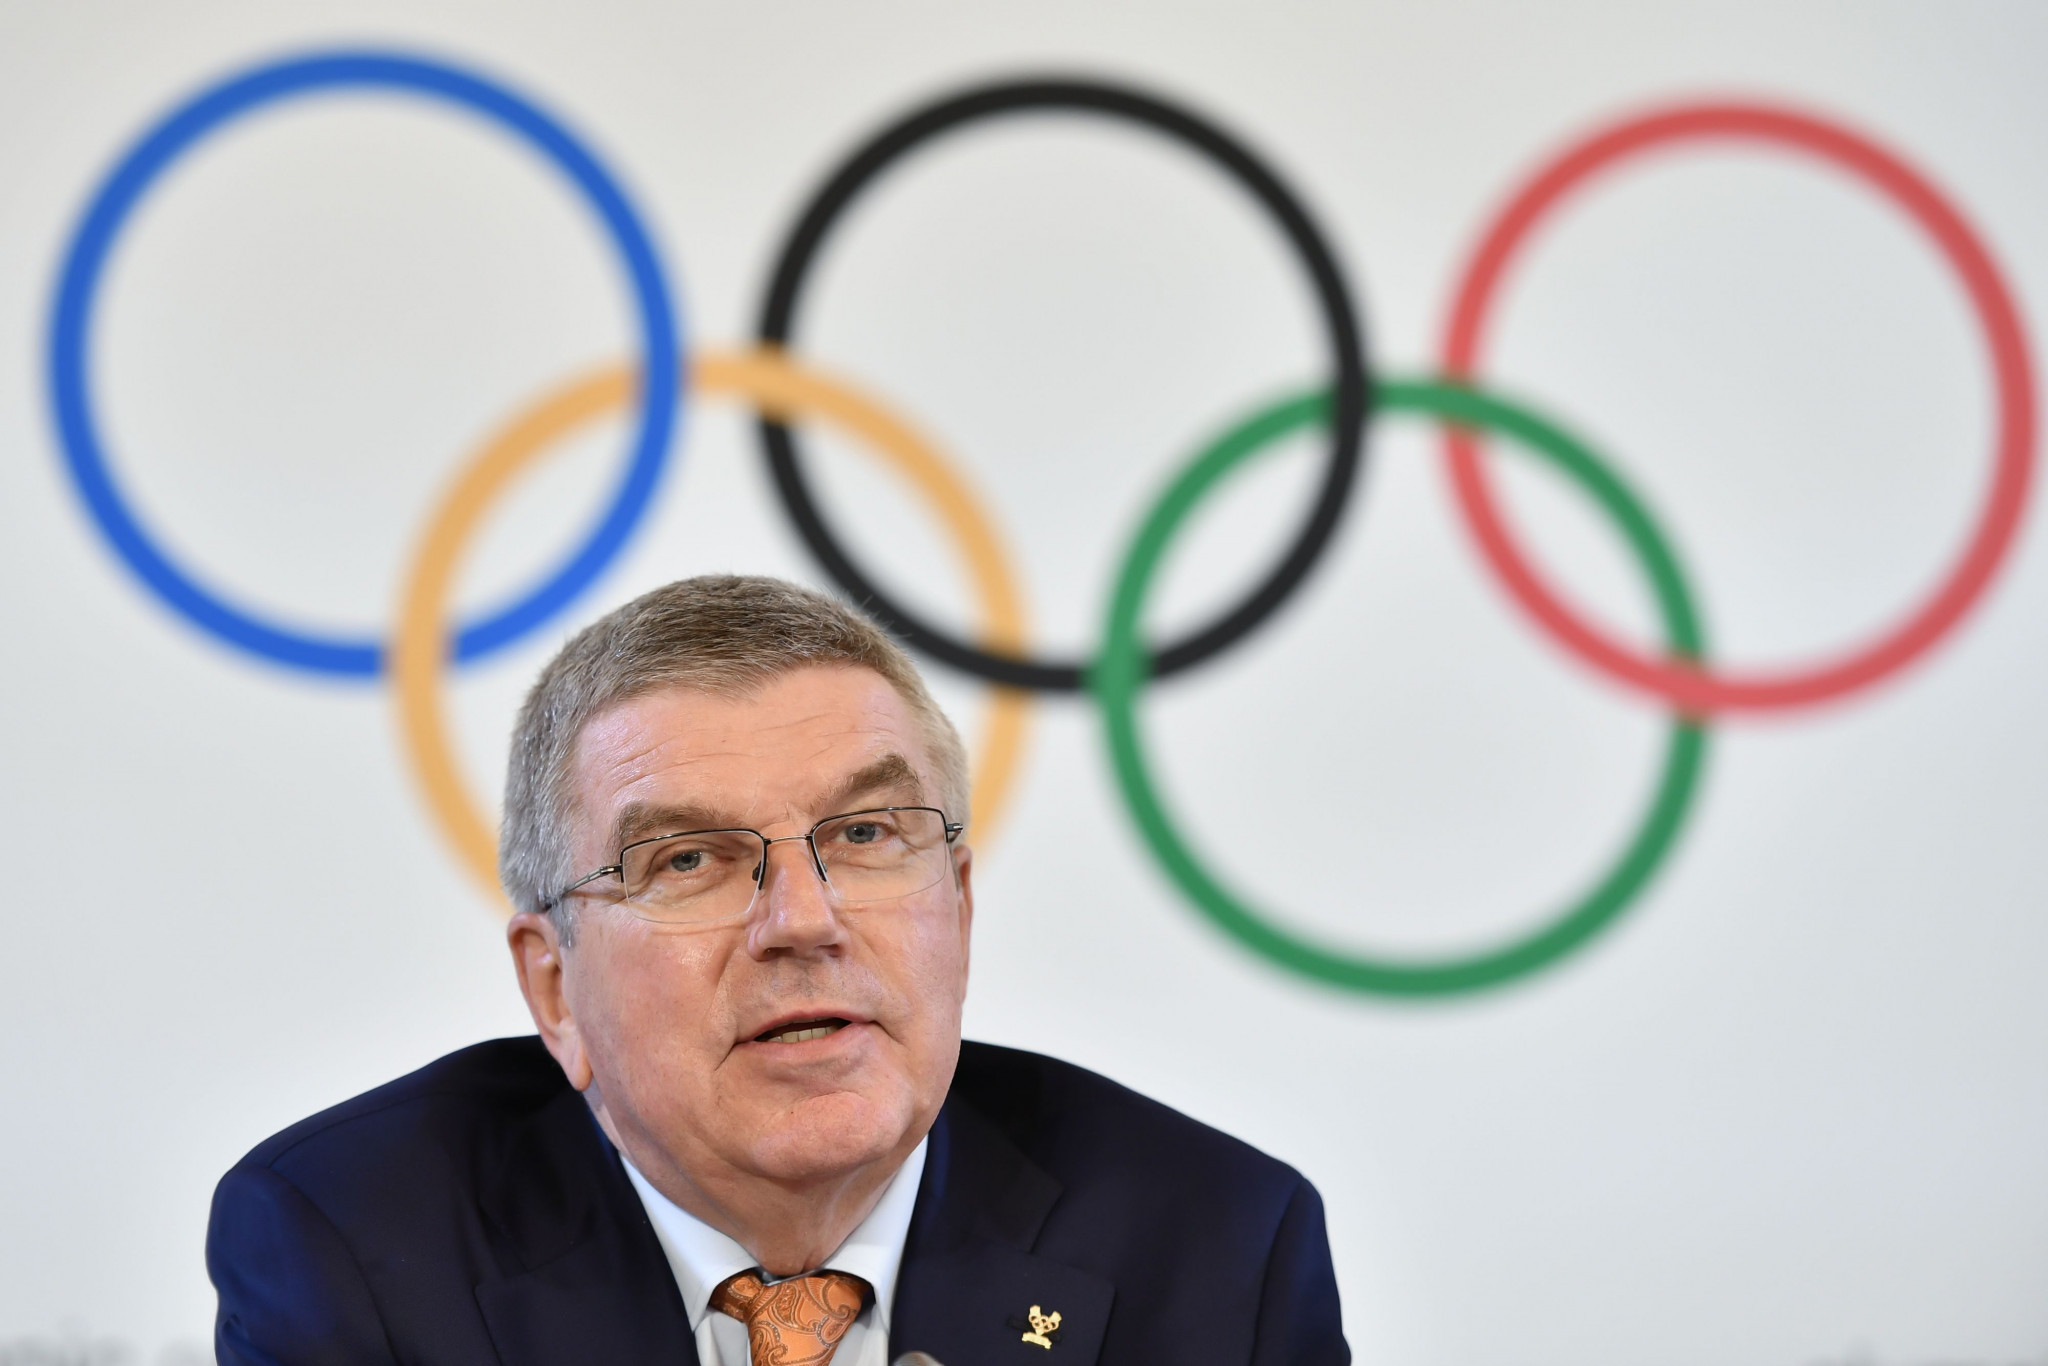 IOC President Thomas Bach will attend the G20 summit in Osaka next week ©Getty Images